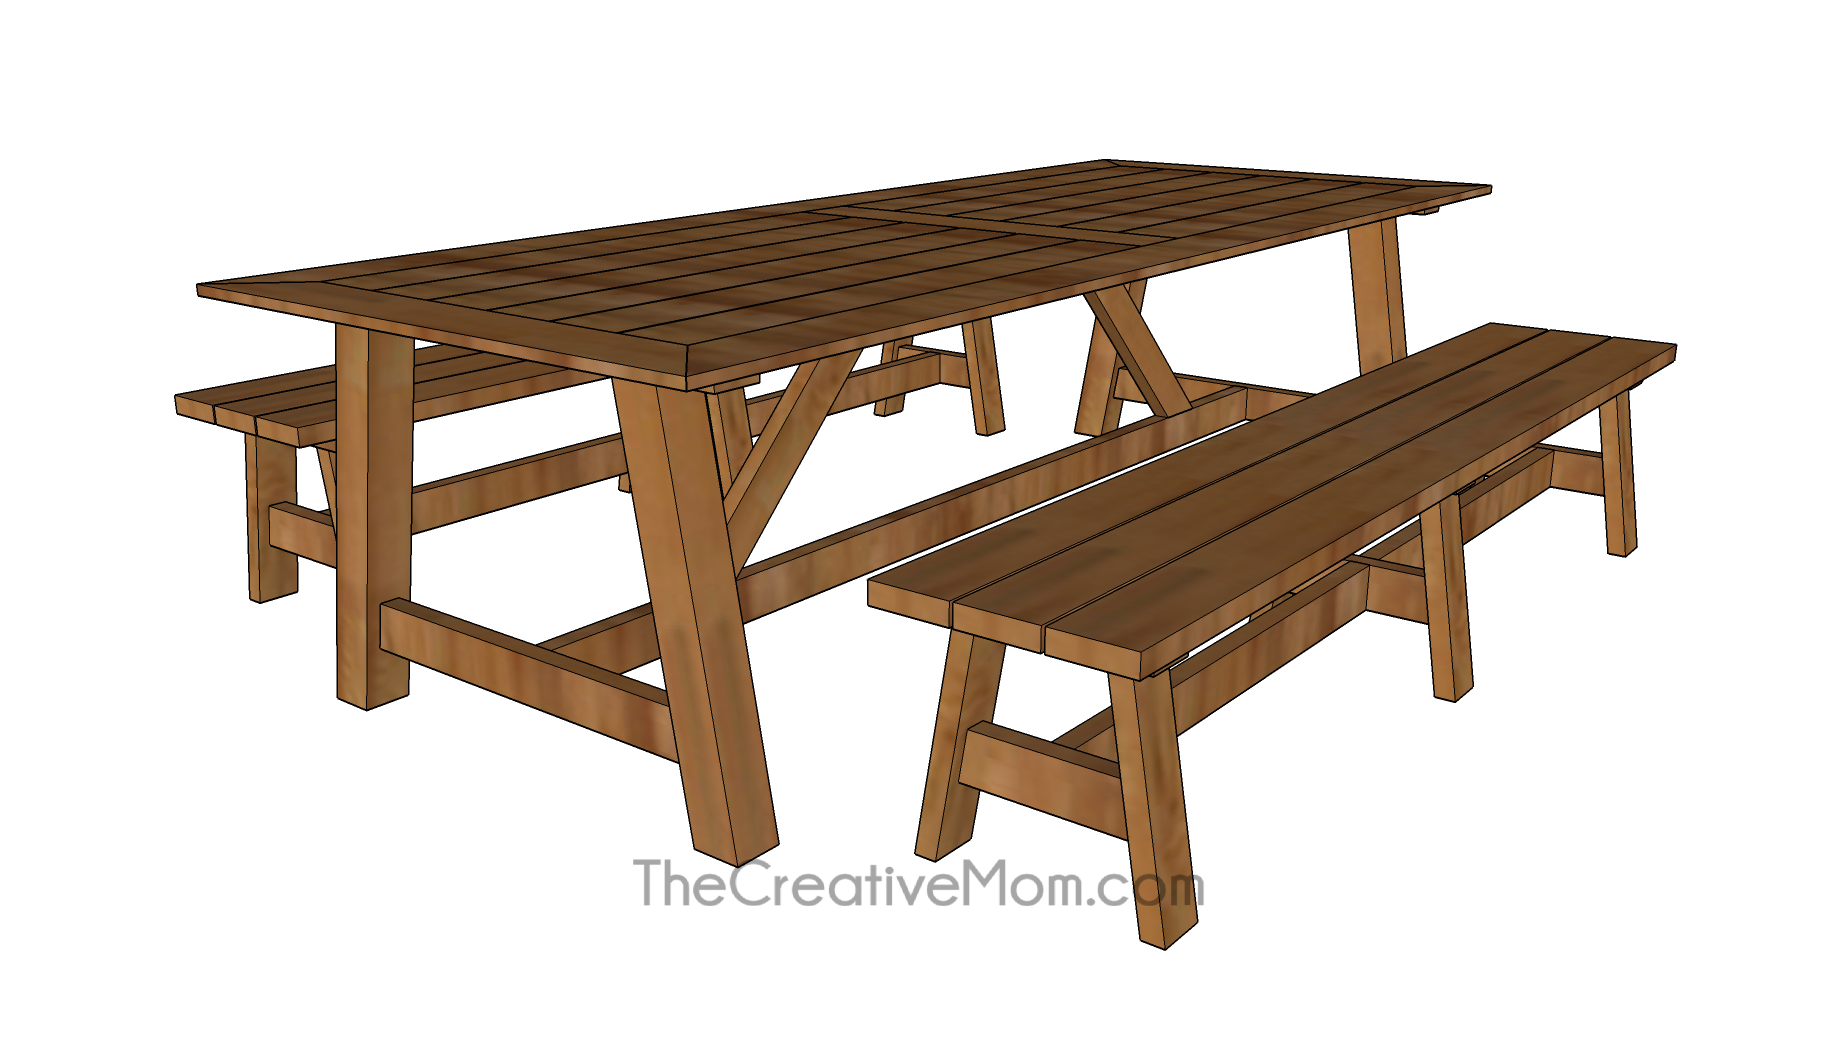 outdoor-dining-table-building-plans-001